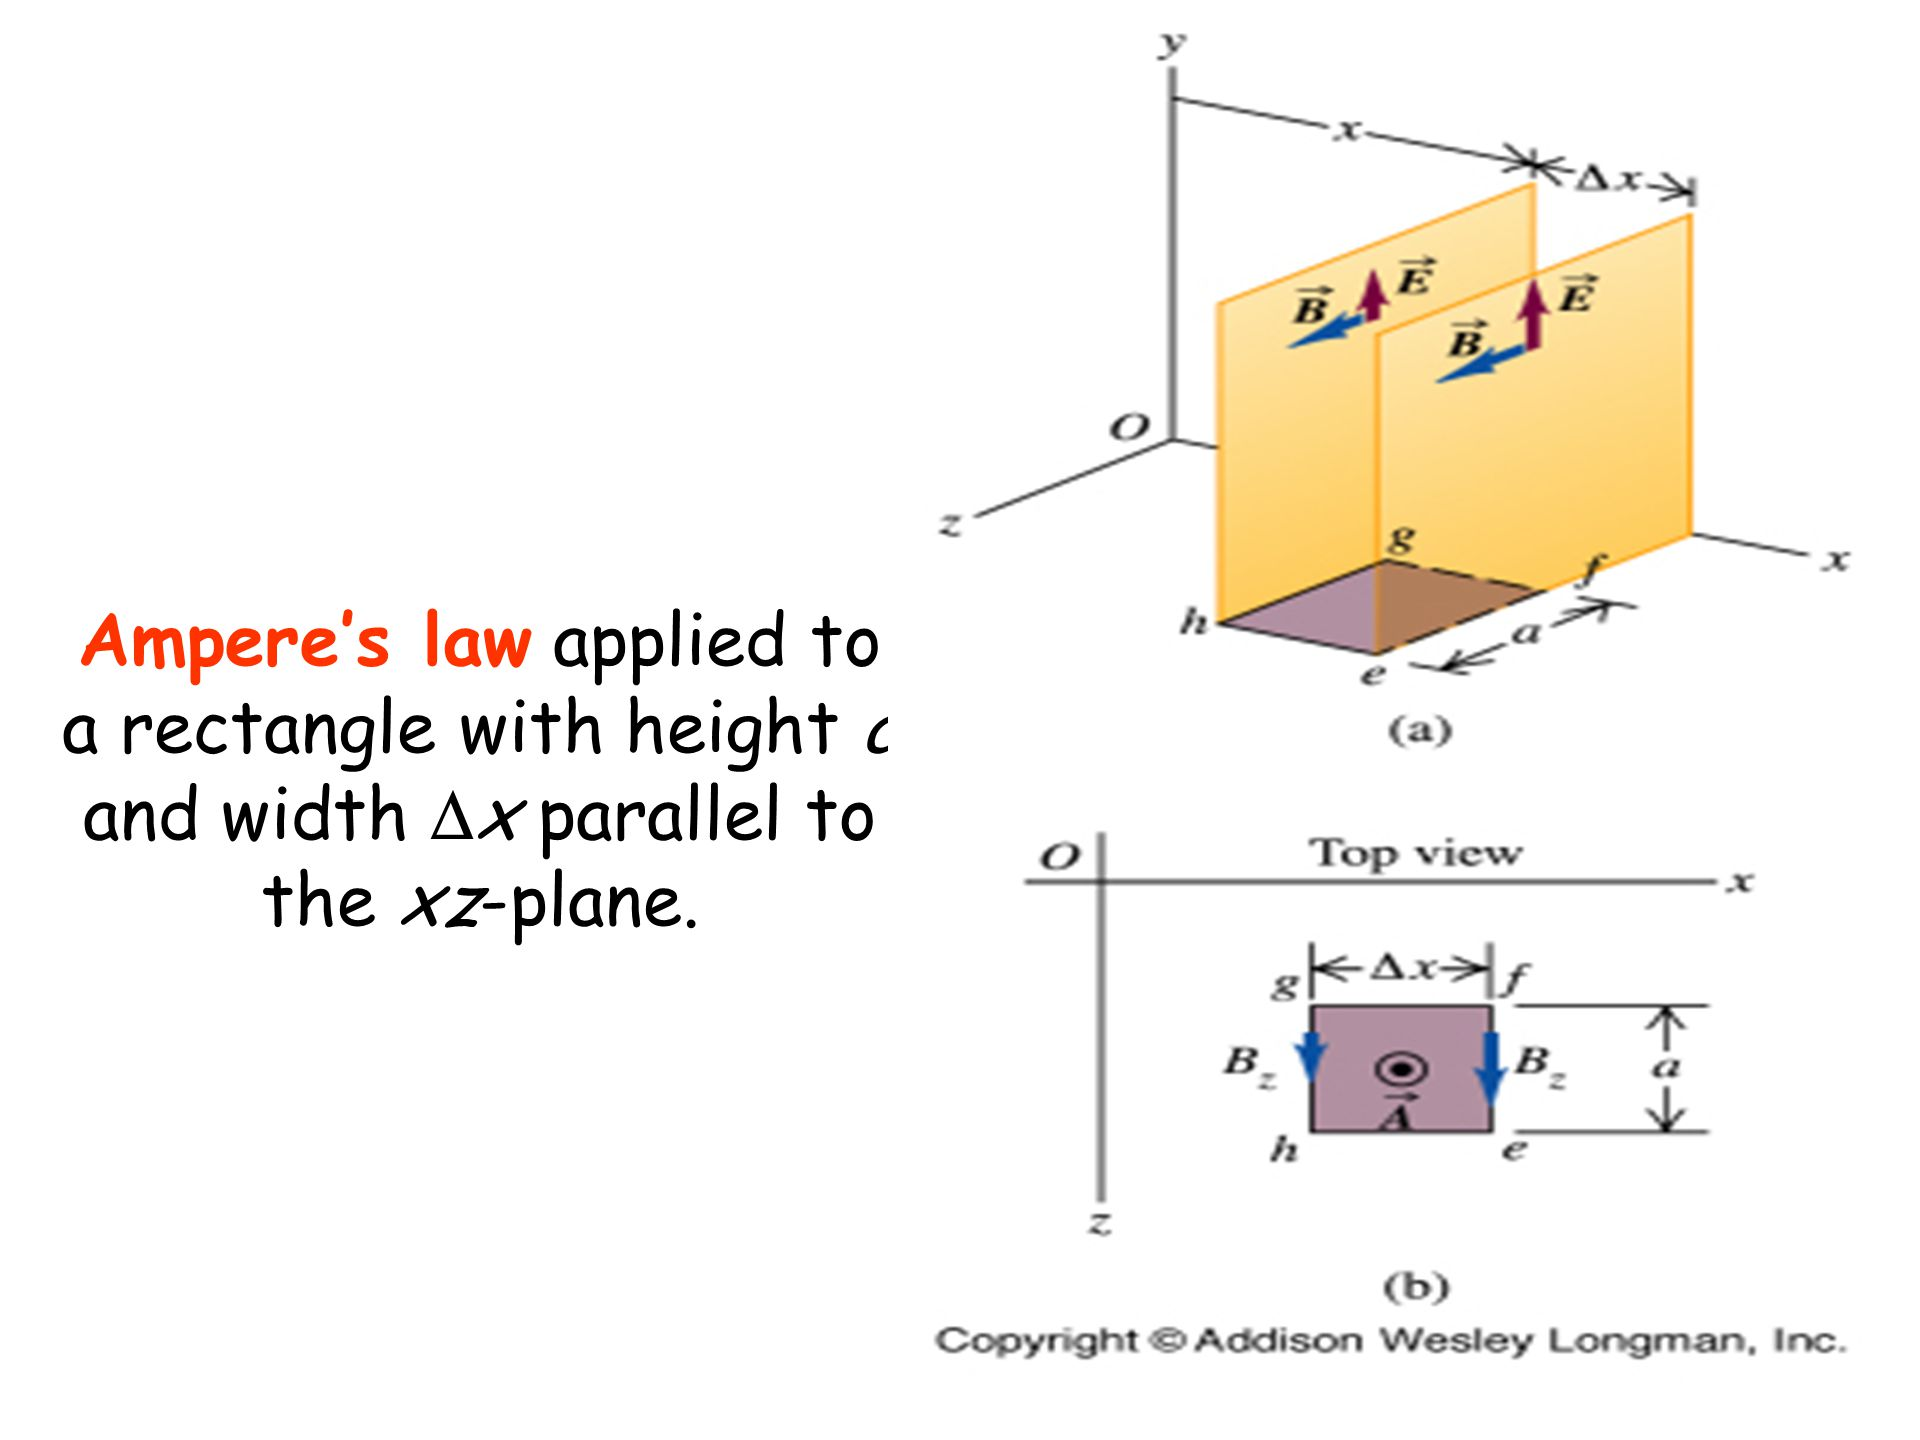 Ampere's law applied to a rectangle with height a and width Dx parallel to the xz-plane.